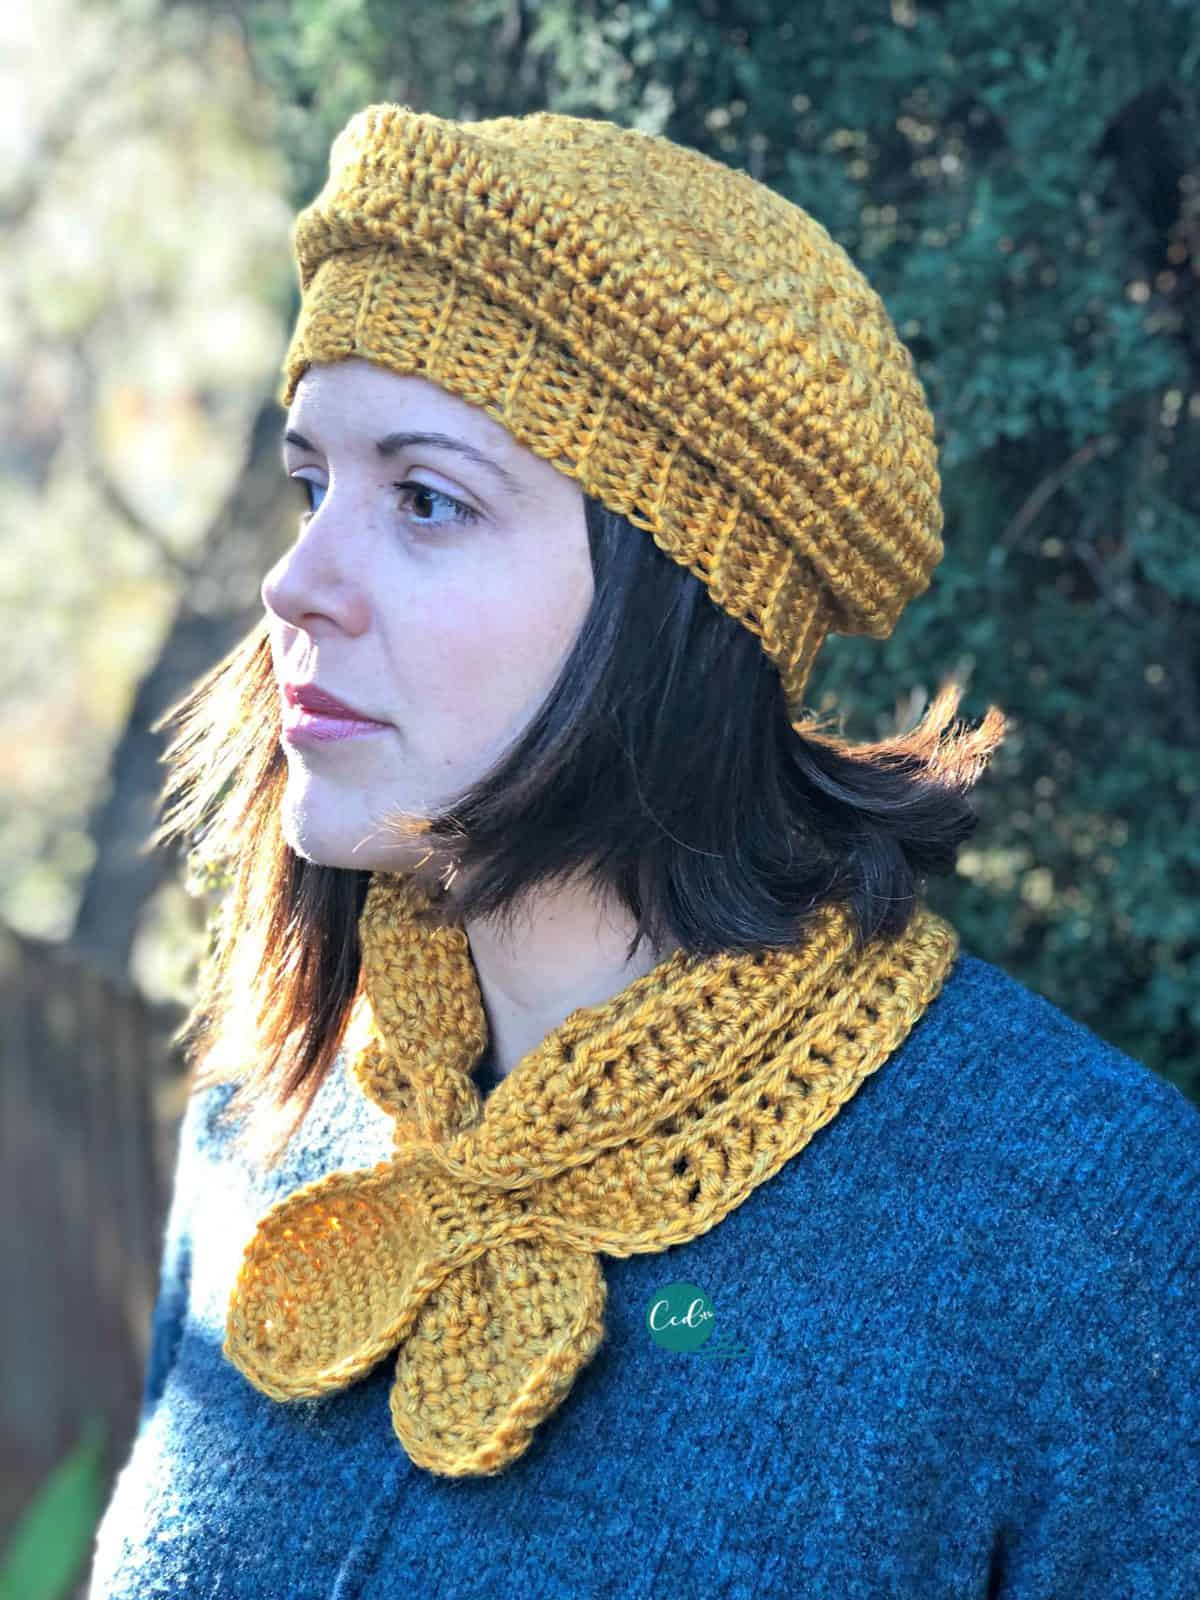 Woman in blue sweater looking out with mustard yellow crochet beret and scarflette on.